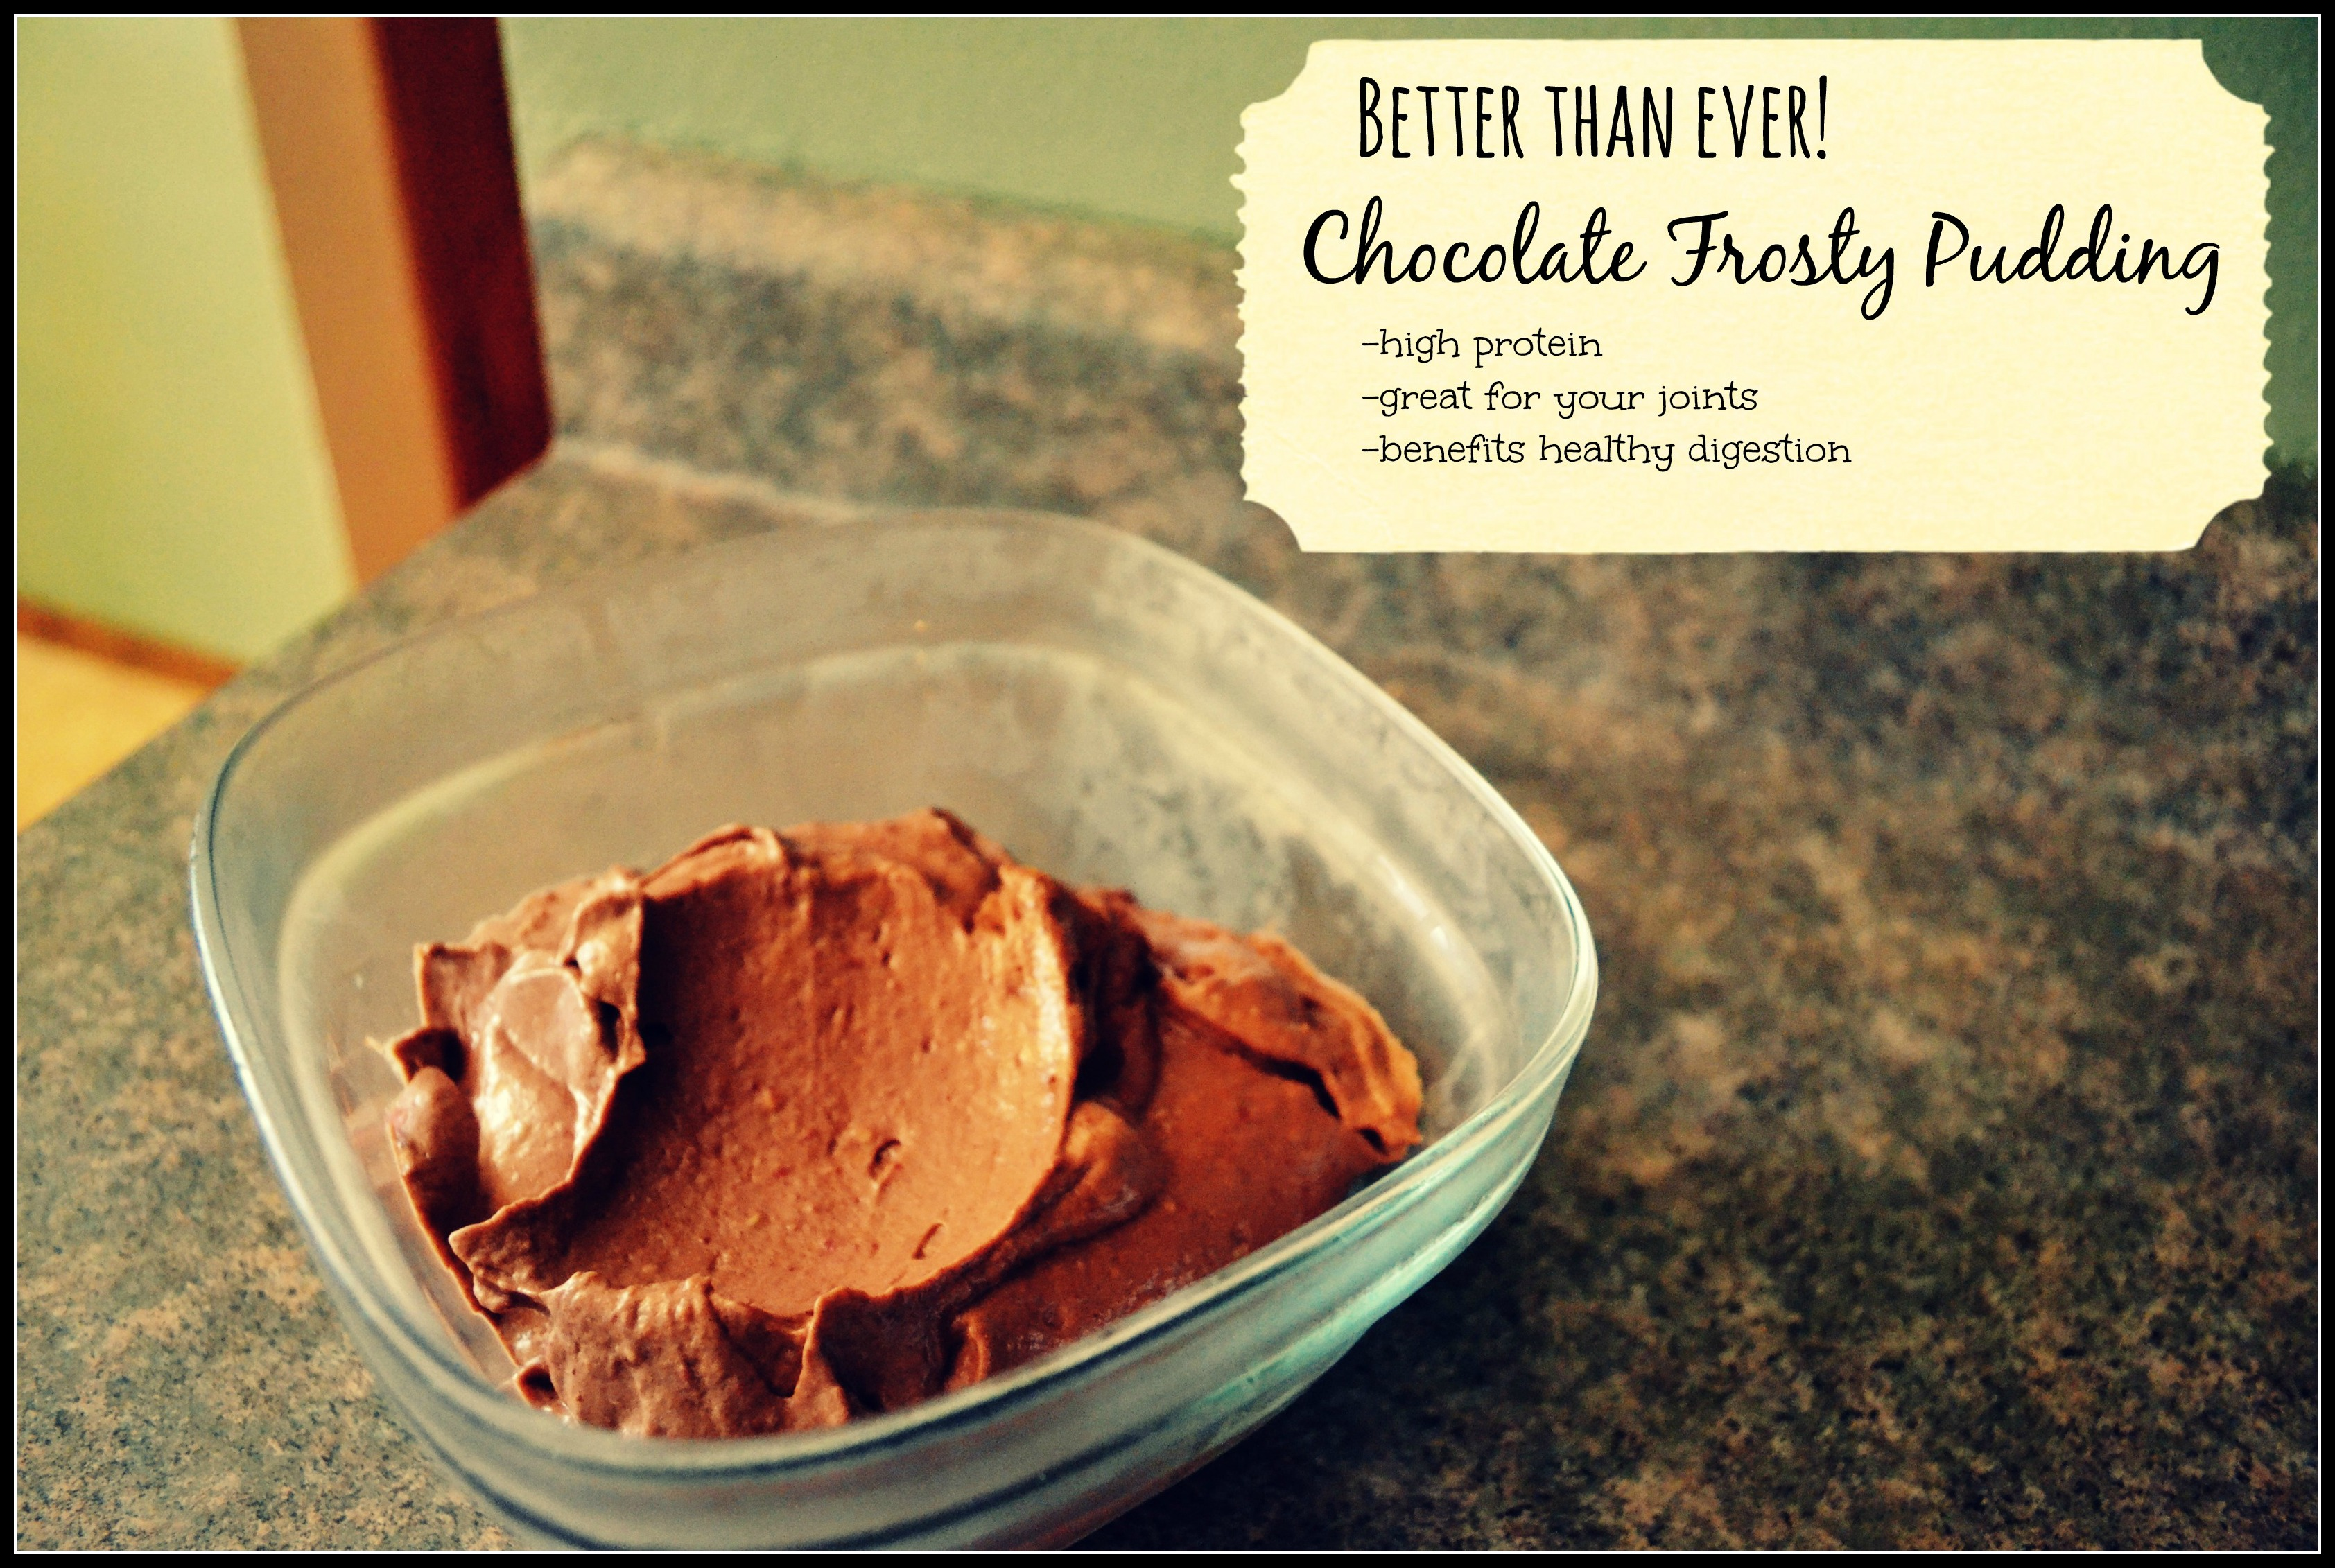 chocolate frosty pudding benefits3